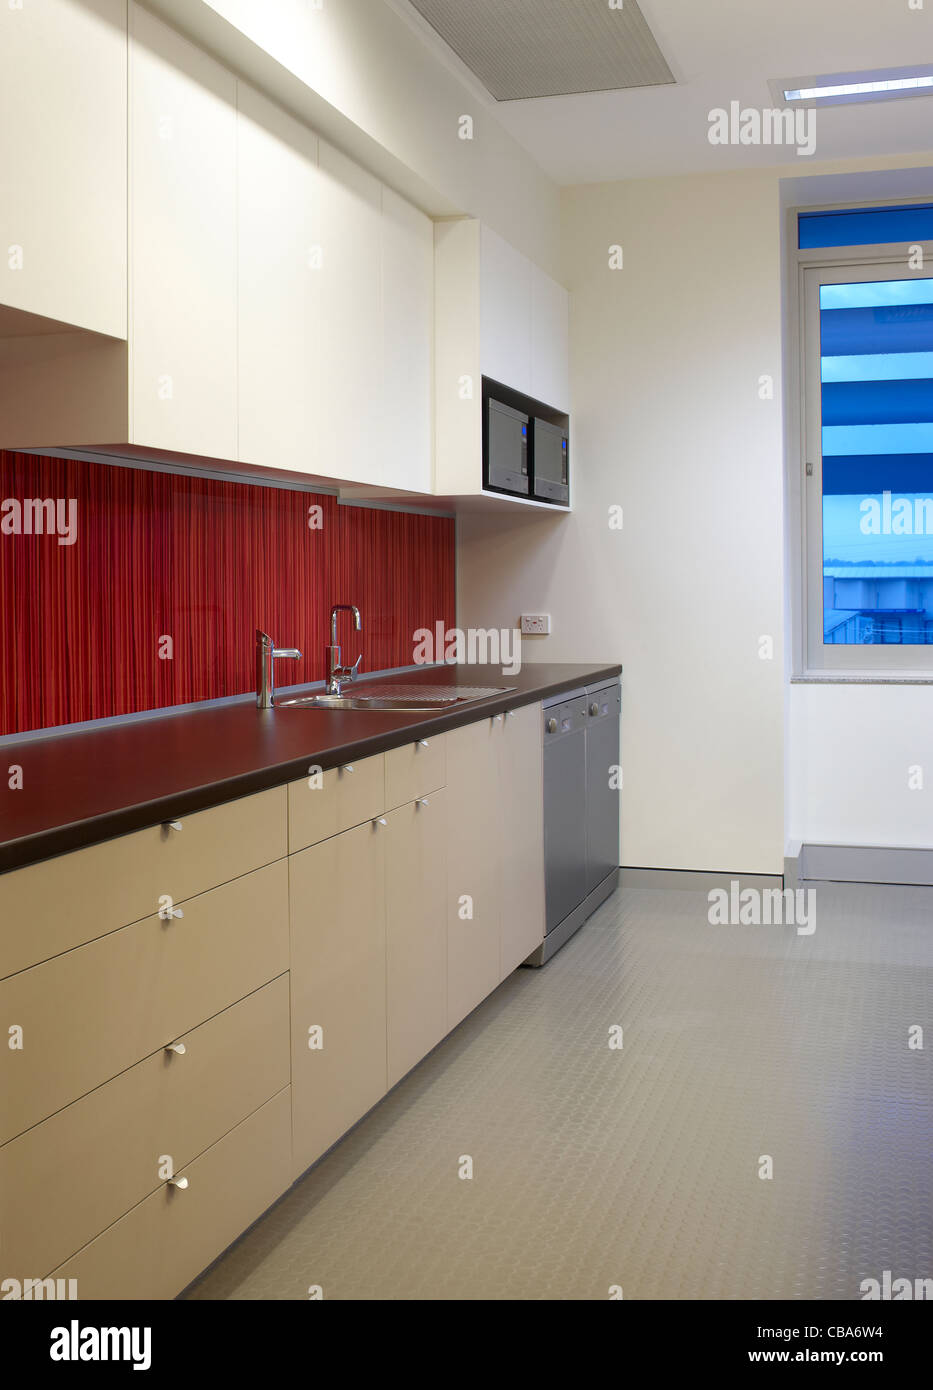 Modern commercial kitchen - Stock Image